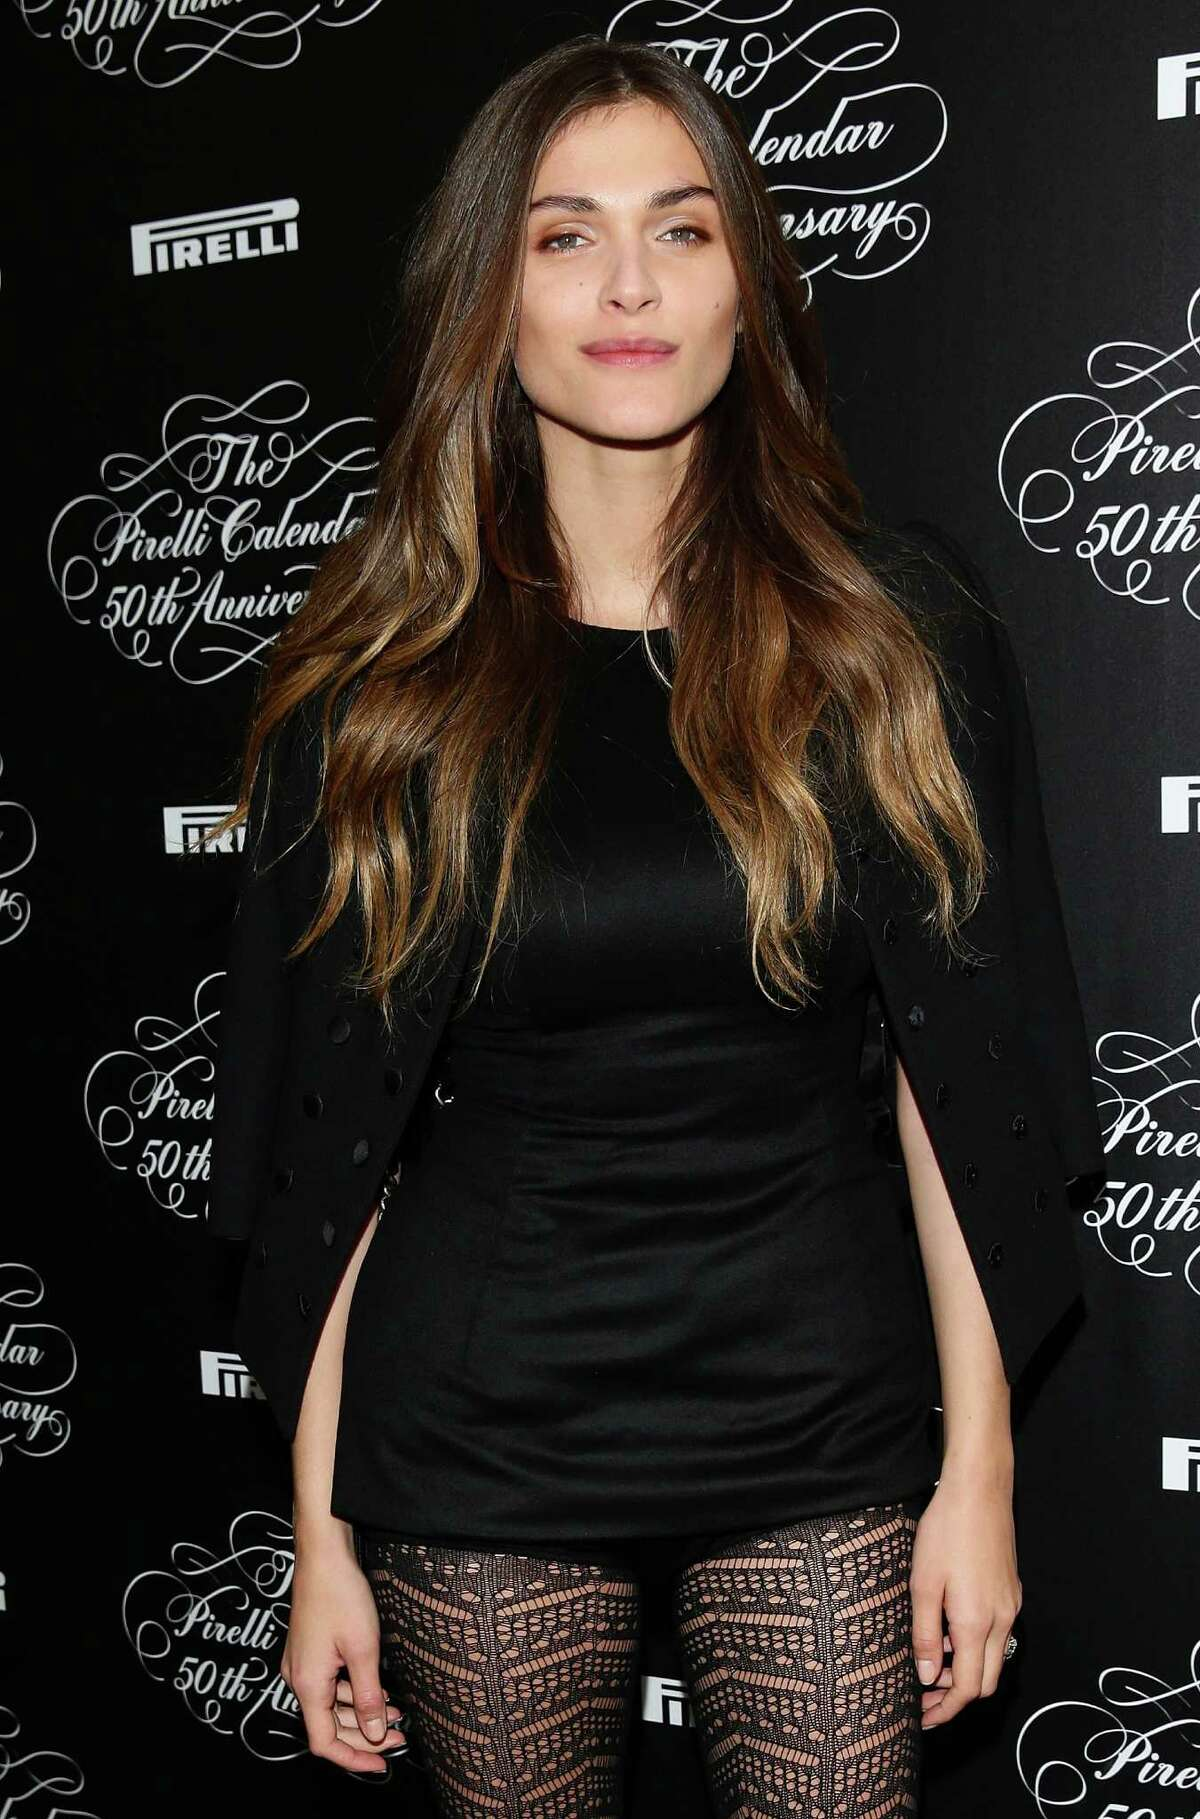 Model Elisa Sednaoui attends the Pirelli Calendar 50th Anniversary press conference on November 21, 2013 in Milan, Italy.